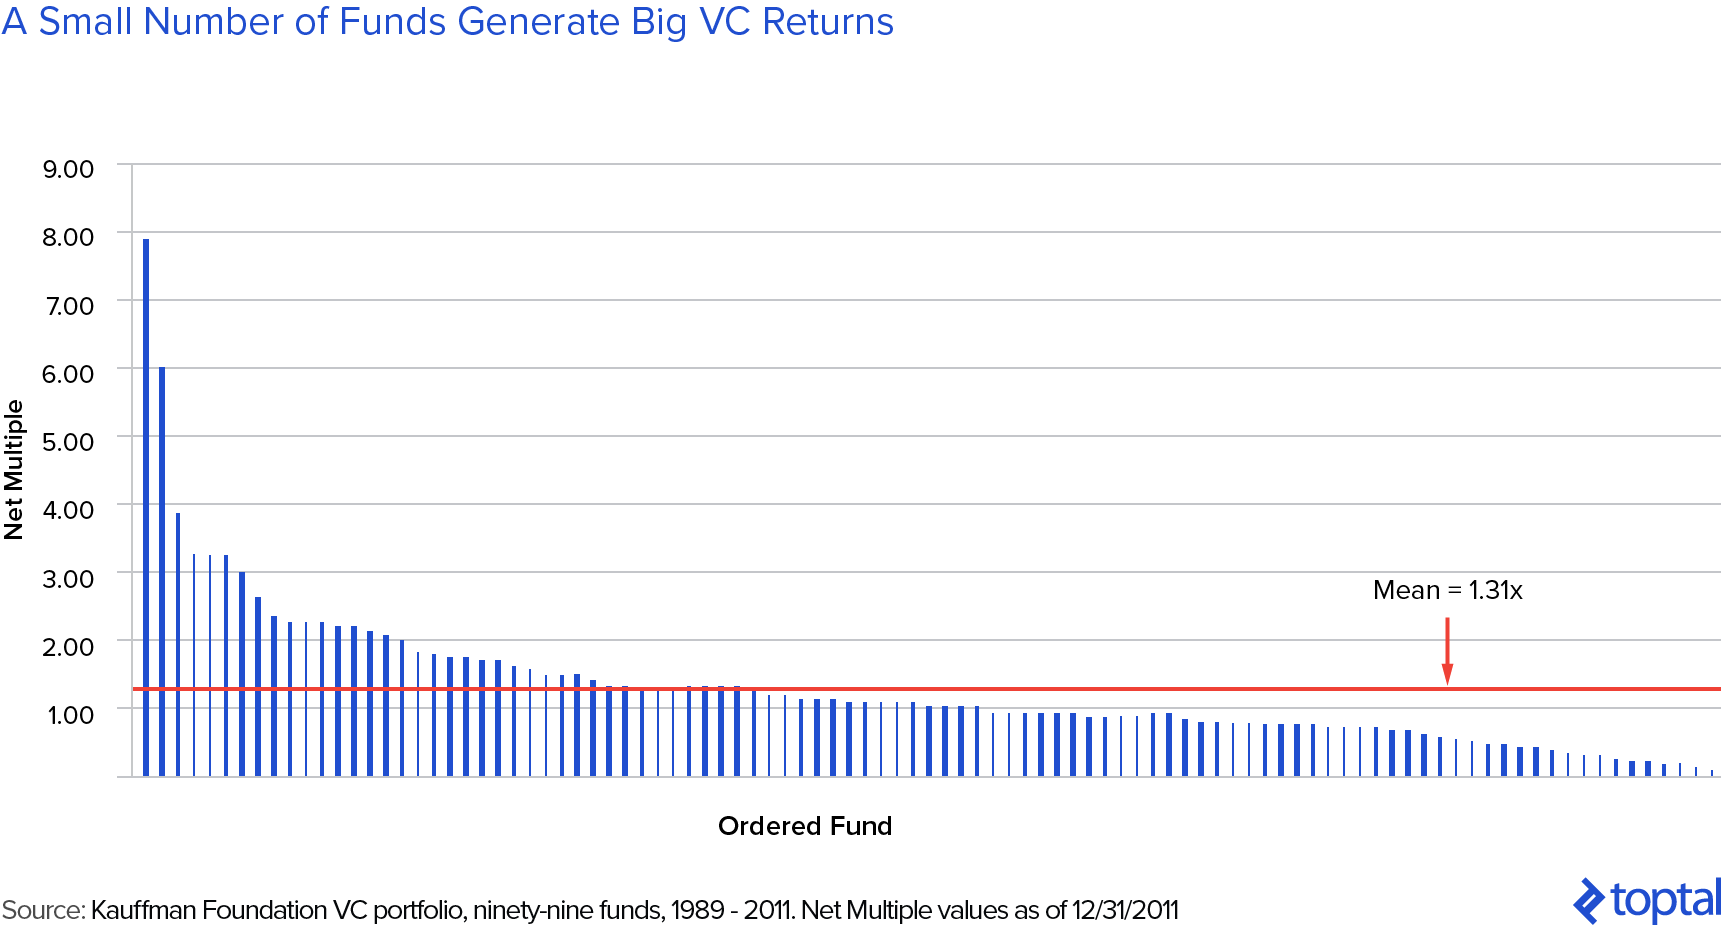 VC Power Law: A Small Number of VC Funds Generate Outsized Returns